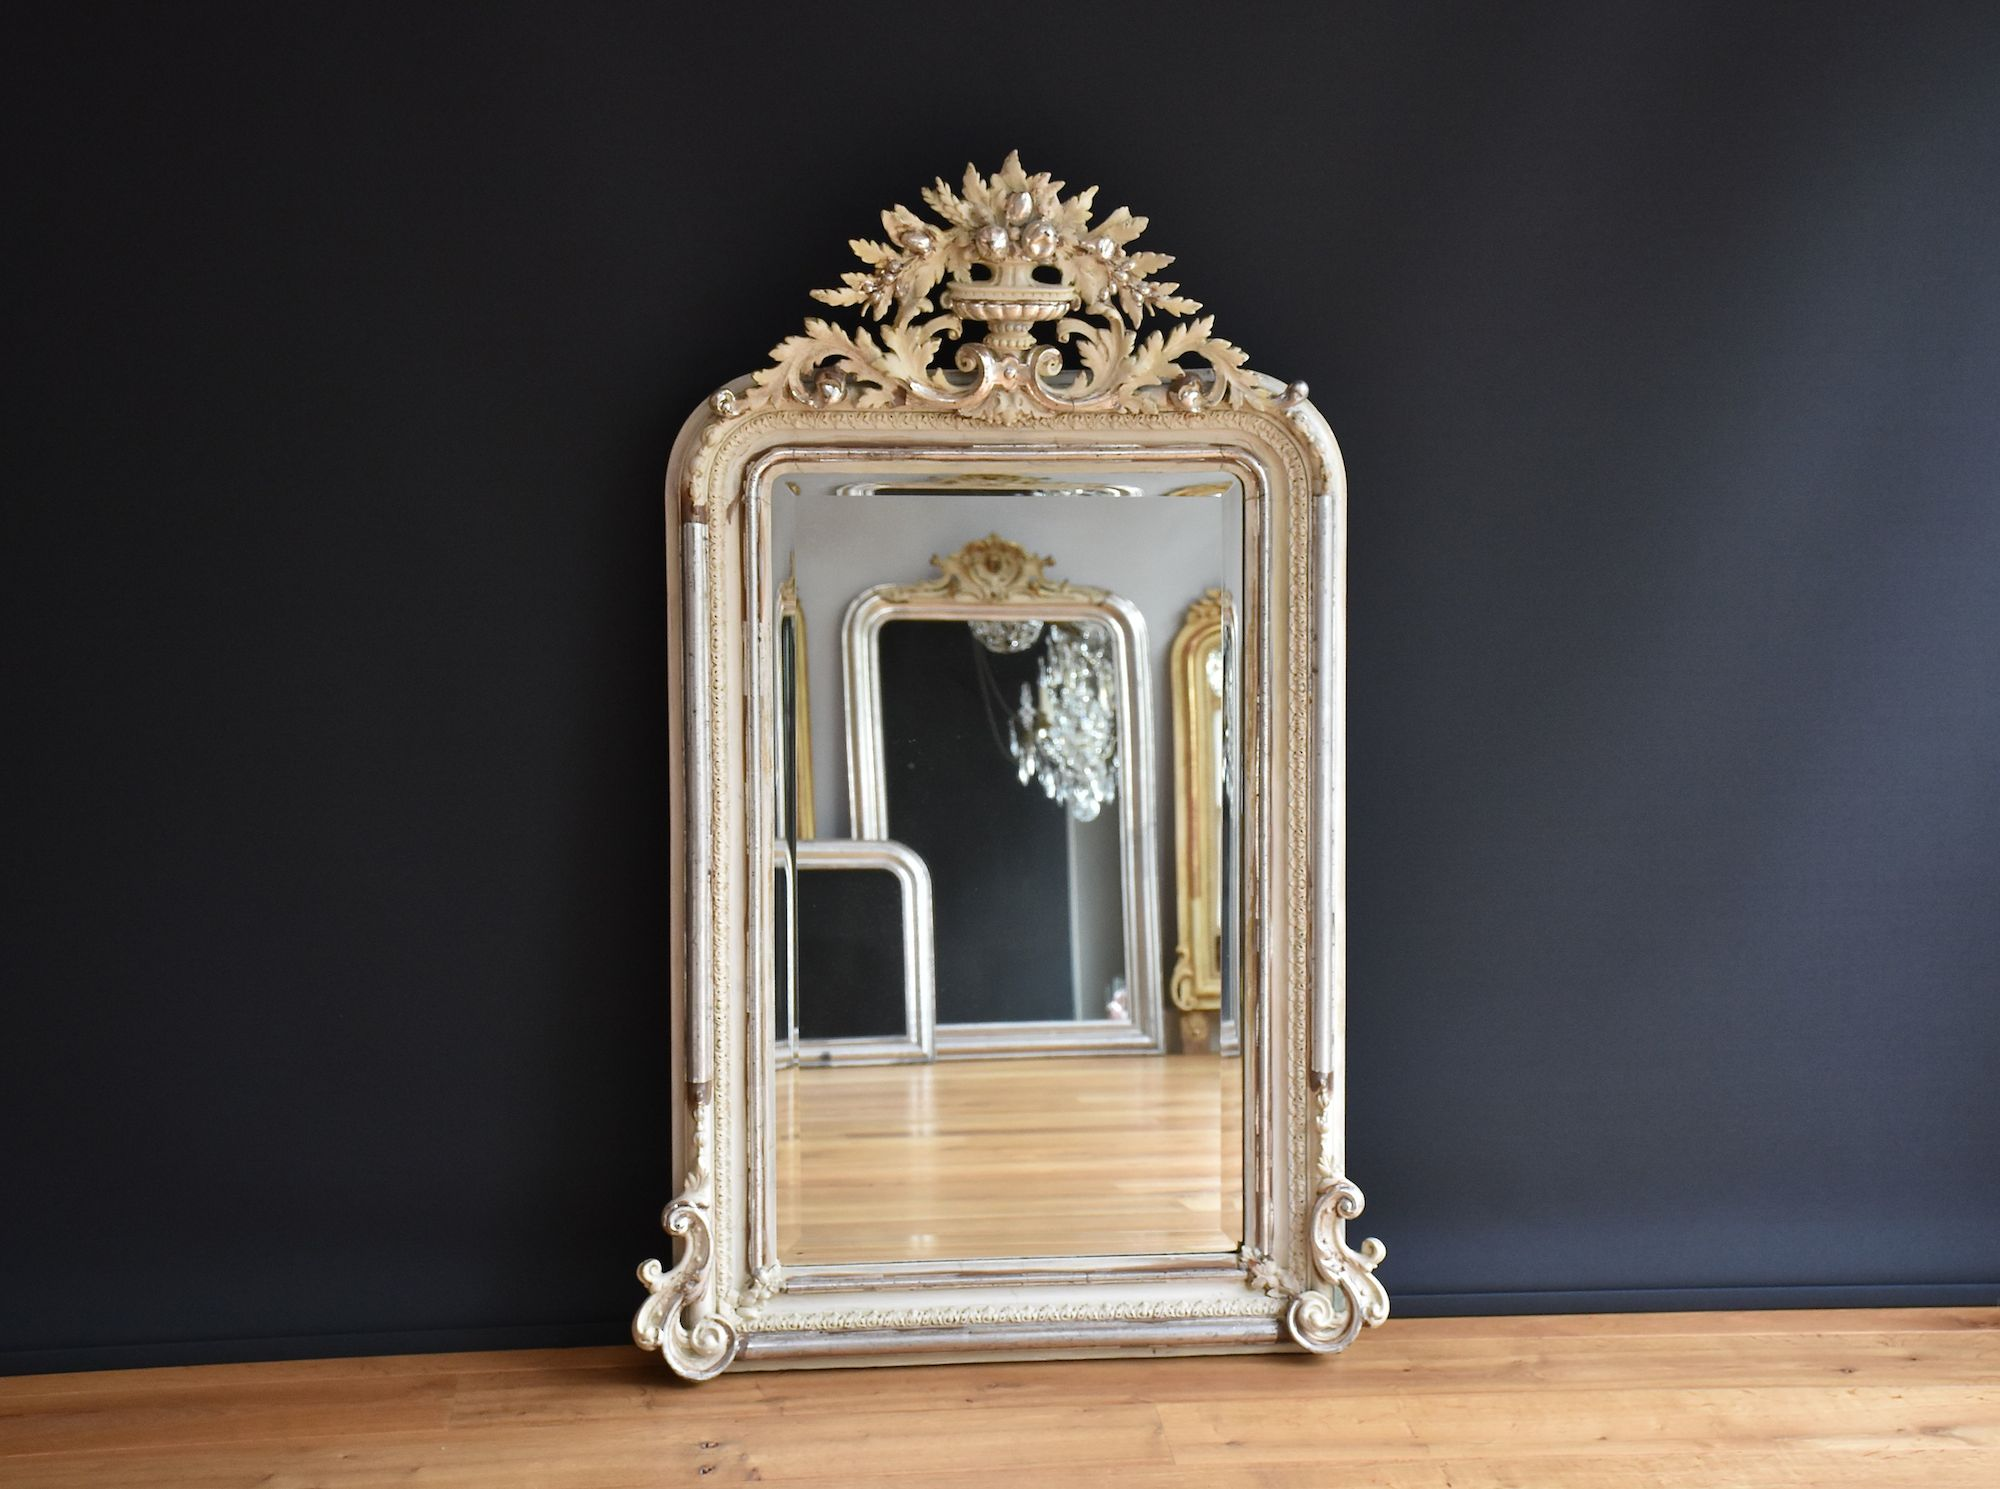 Silvered antique French mirror